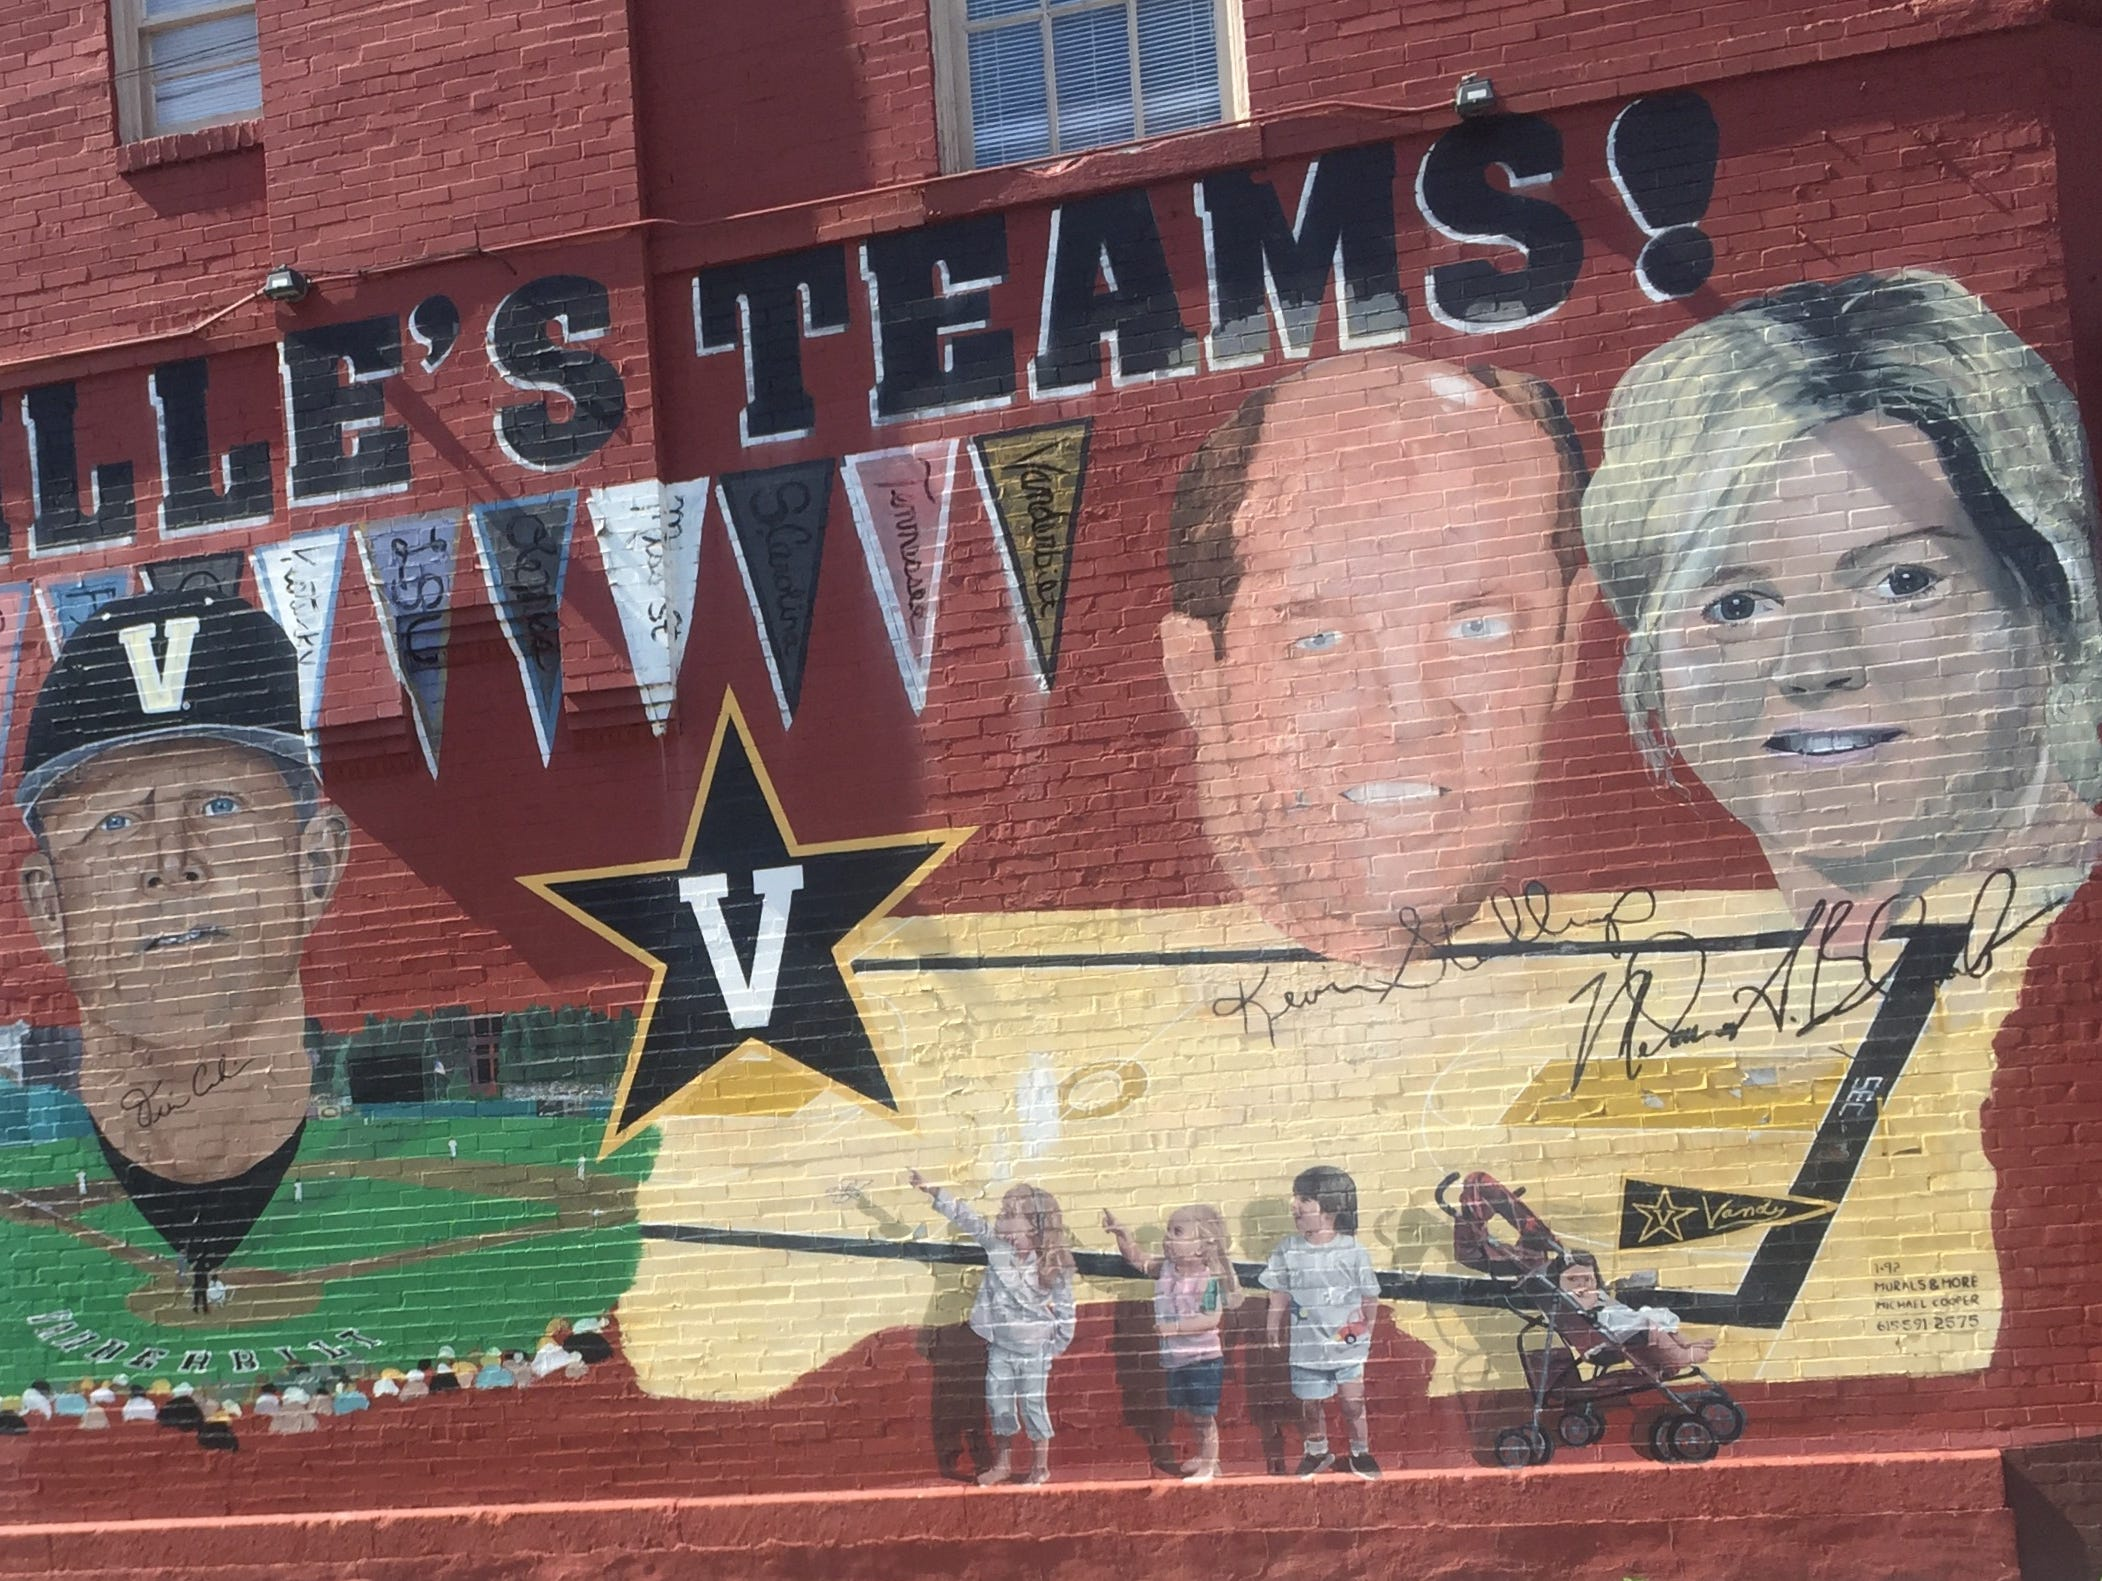 Former Vanderbilt coaches Kevin Stallings and Melanie Balcomb's likenesses are still on the mural on the side of a building on West End and 28th Avenue.